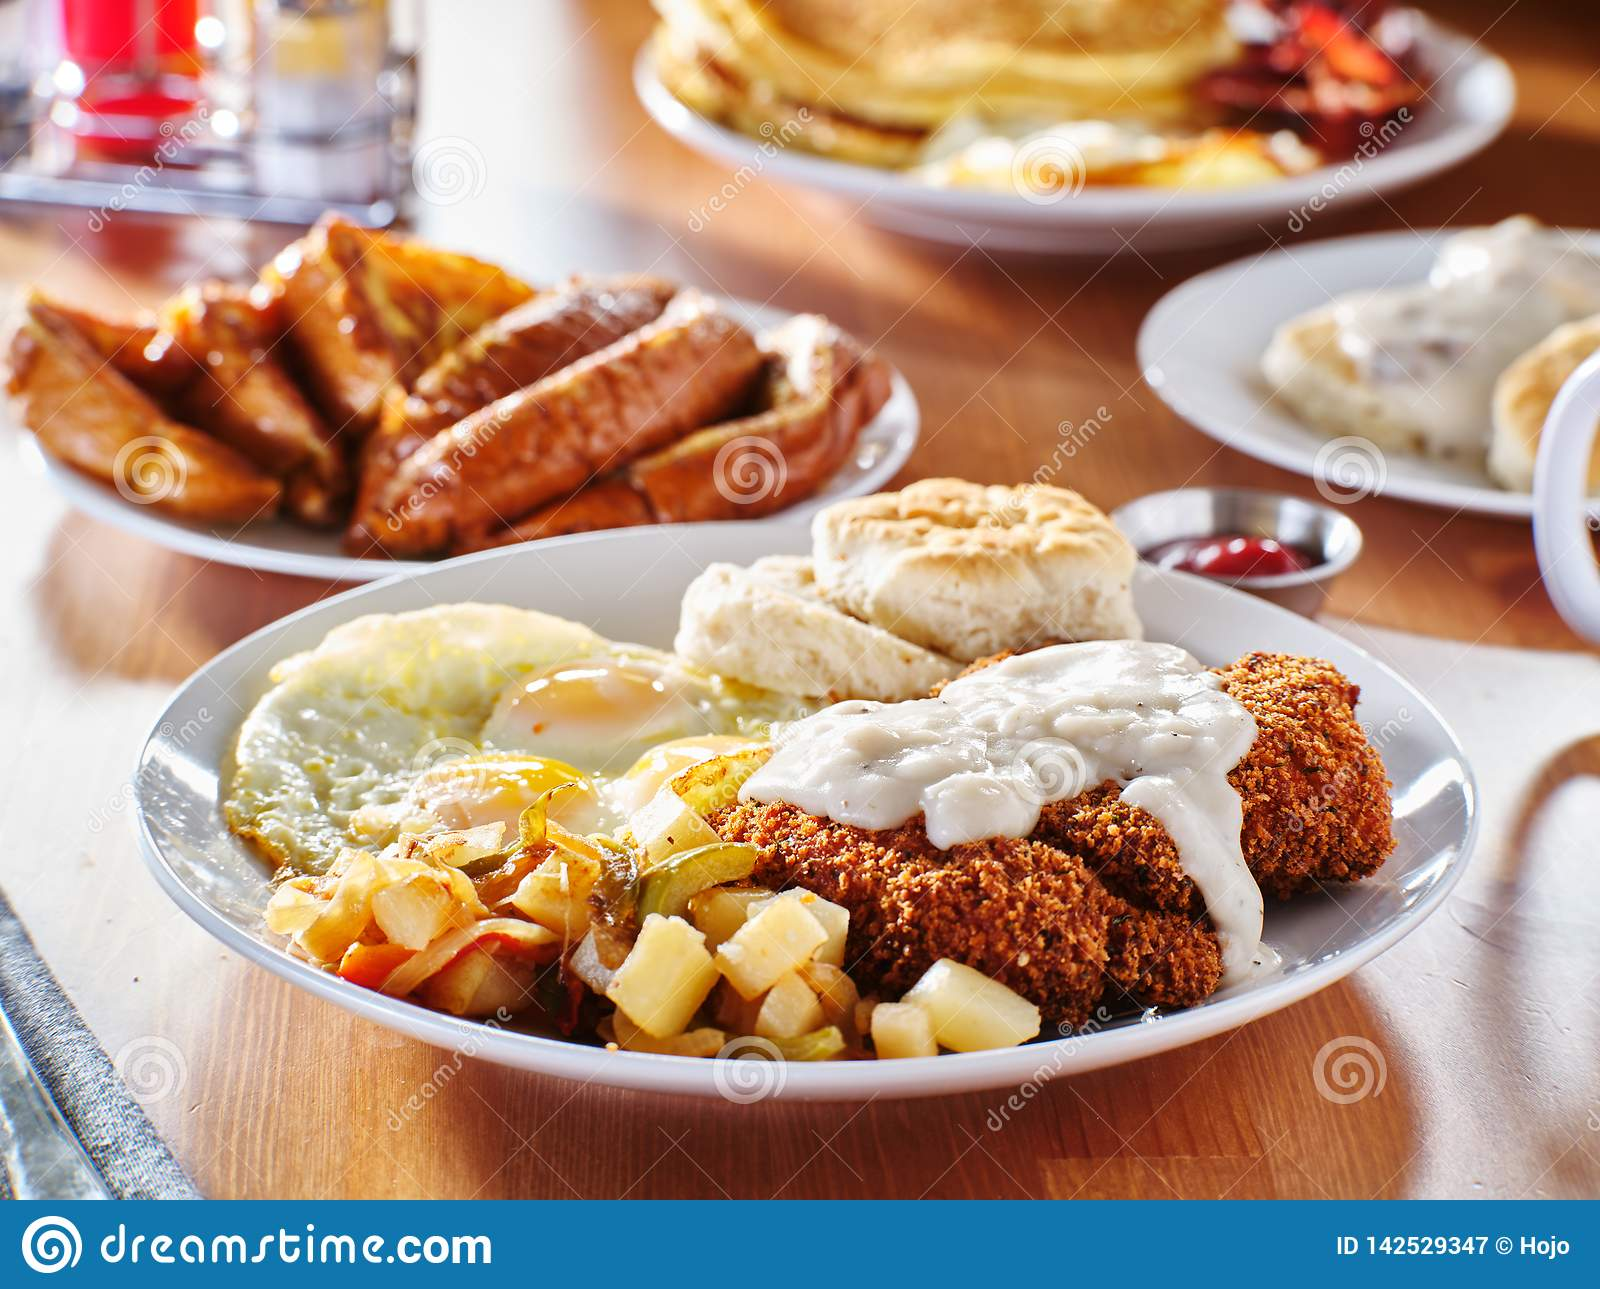 357 Chicken Eggs Fried Steak Photos Free Royalty Free Stock Photos From Dreamstime